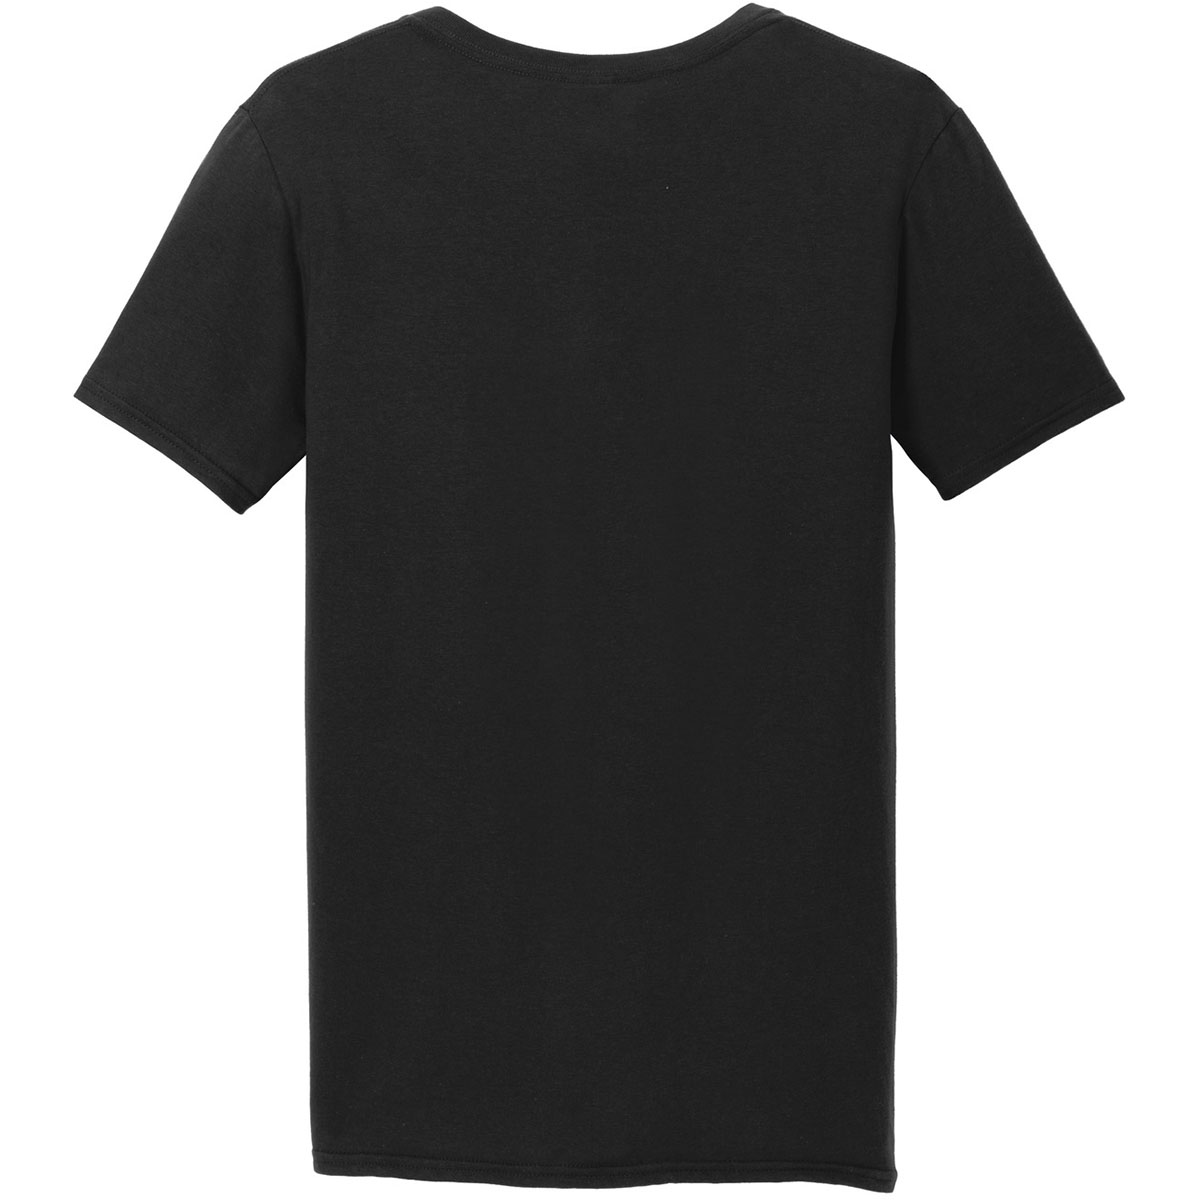 Gildan 64v00 softstyle v neck t shirt black for Gildan brand t shirt size chart